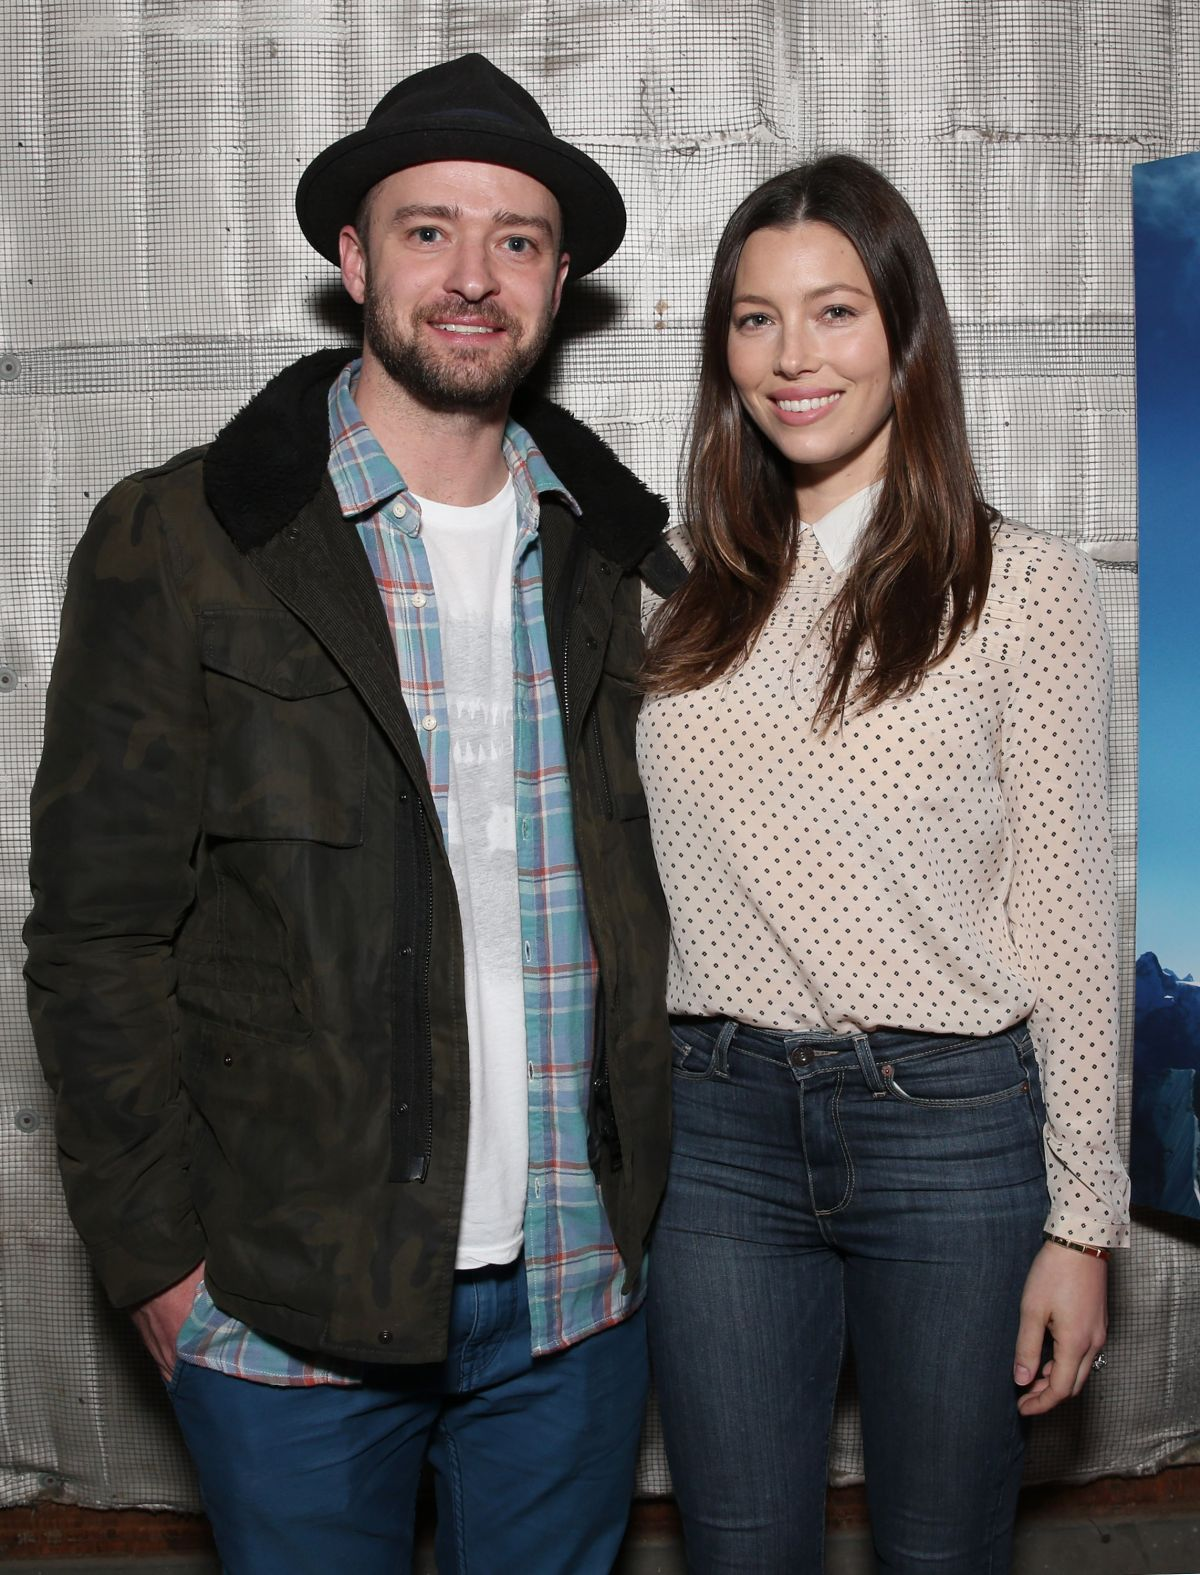 JESSICA BIEL at Celebration of Meru Screening and Reception in Los Angeles 12/16/2015